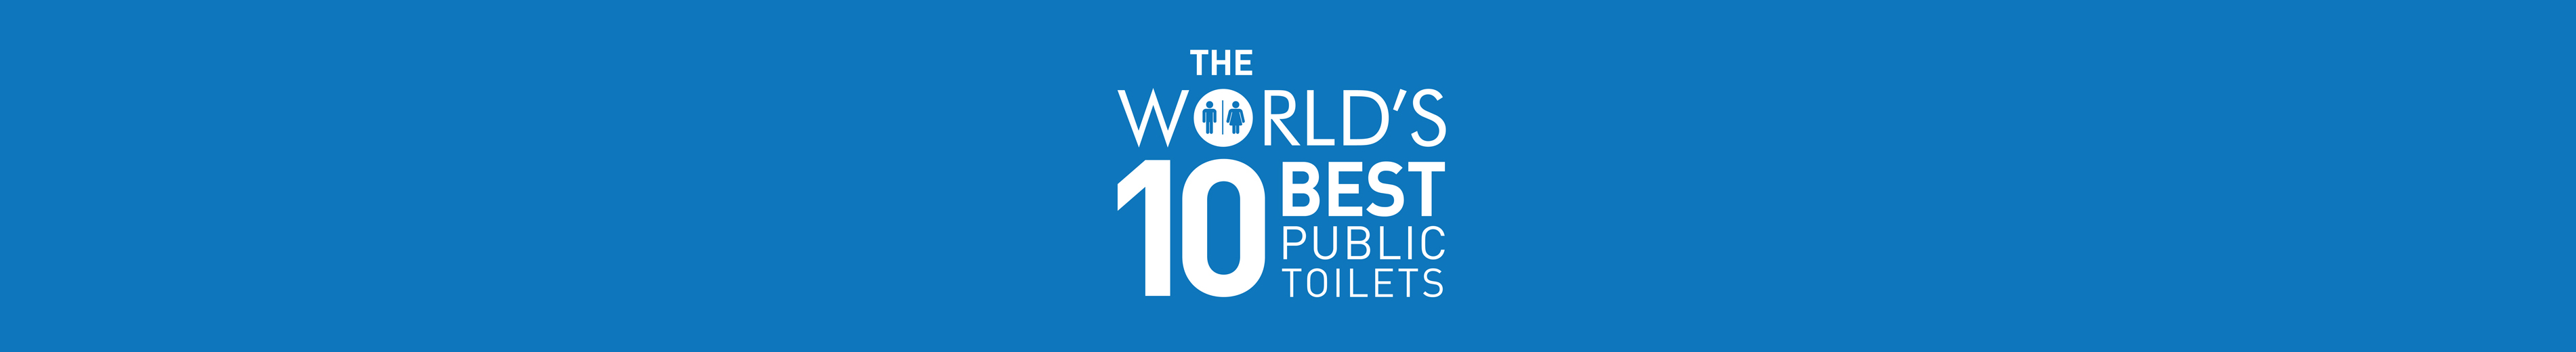 Worlds_Best_Public_Toilets